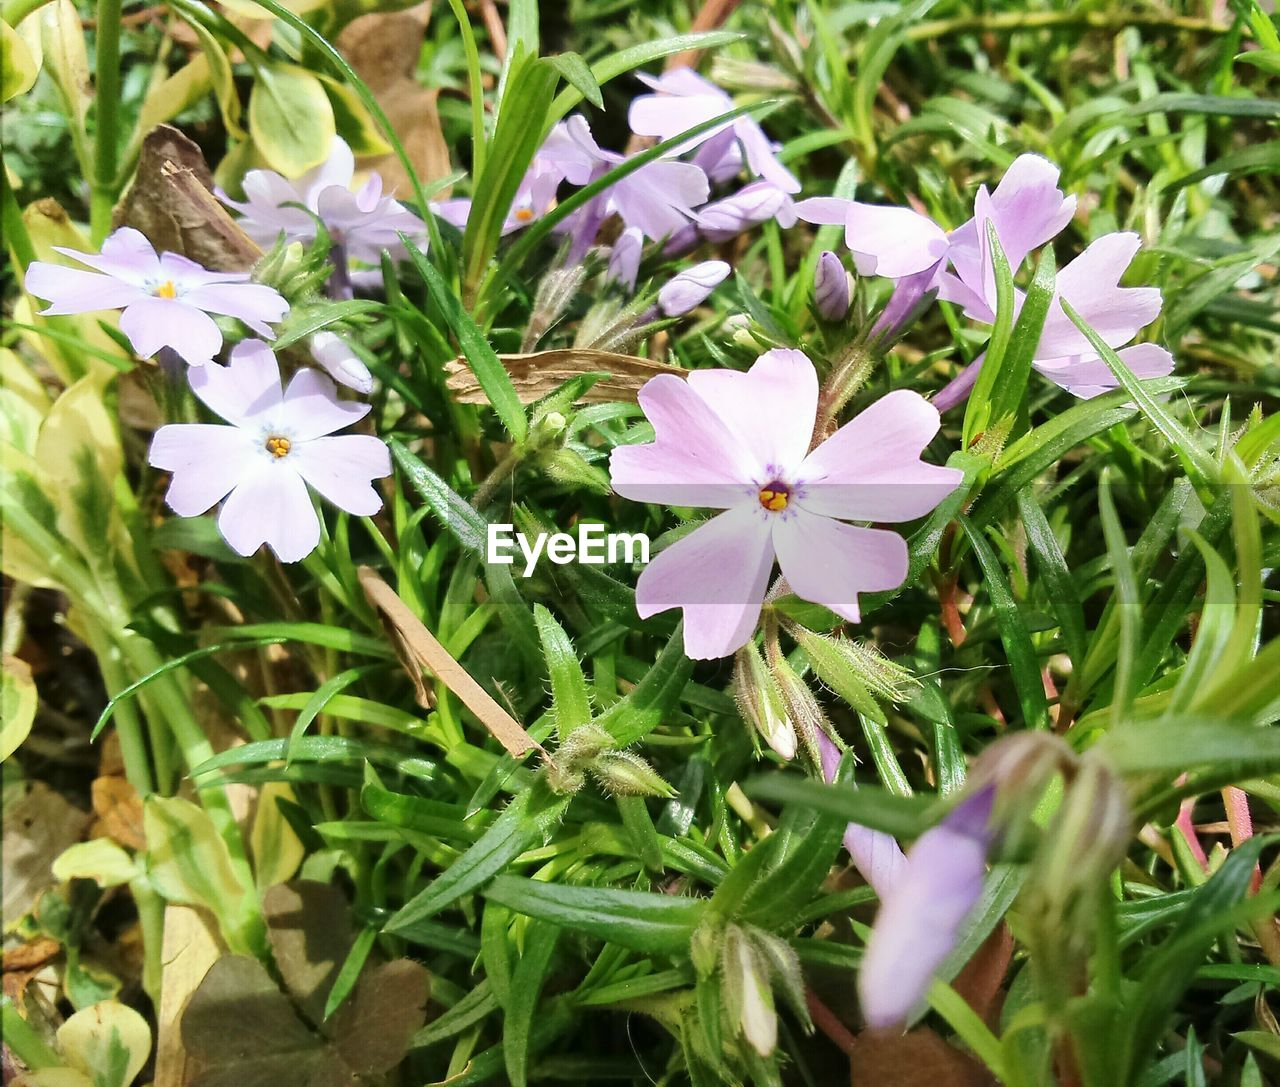 flower, growth, nature, fragility, petal, freshness, beauty in nature, plant, blooming, day, flower head, outdoors, no people, leaf, close-up, periwinkle